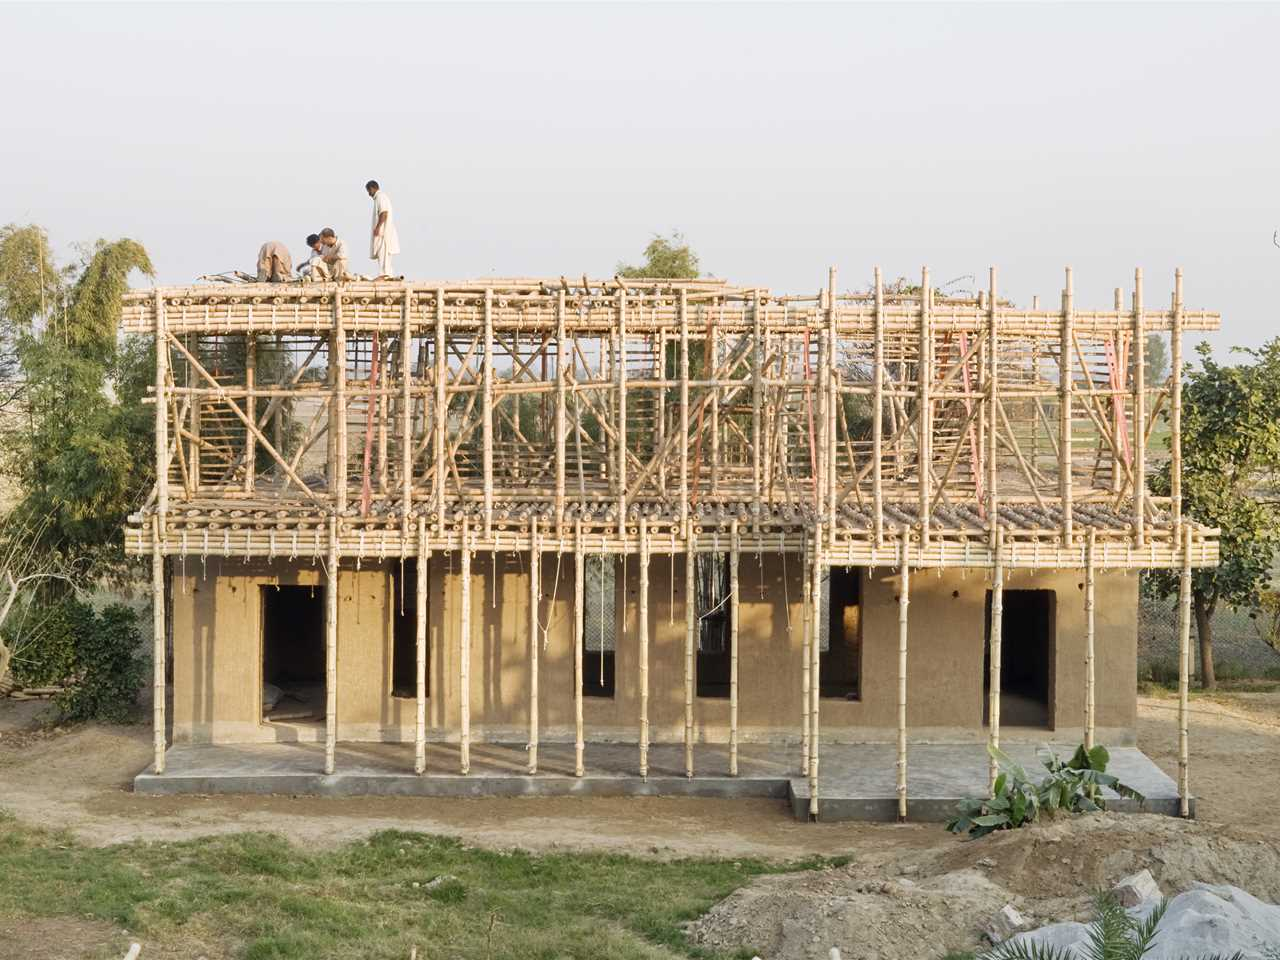 Global Finalist 2012: Locally-manufactured cob and bamboo school building, Jar Maulwi, Pakistan